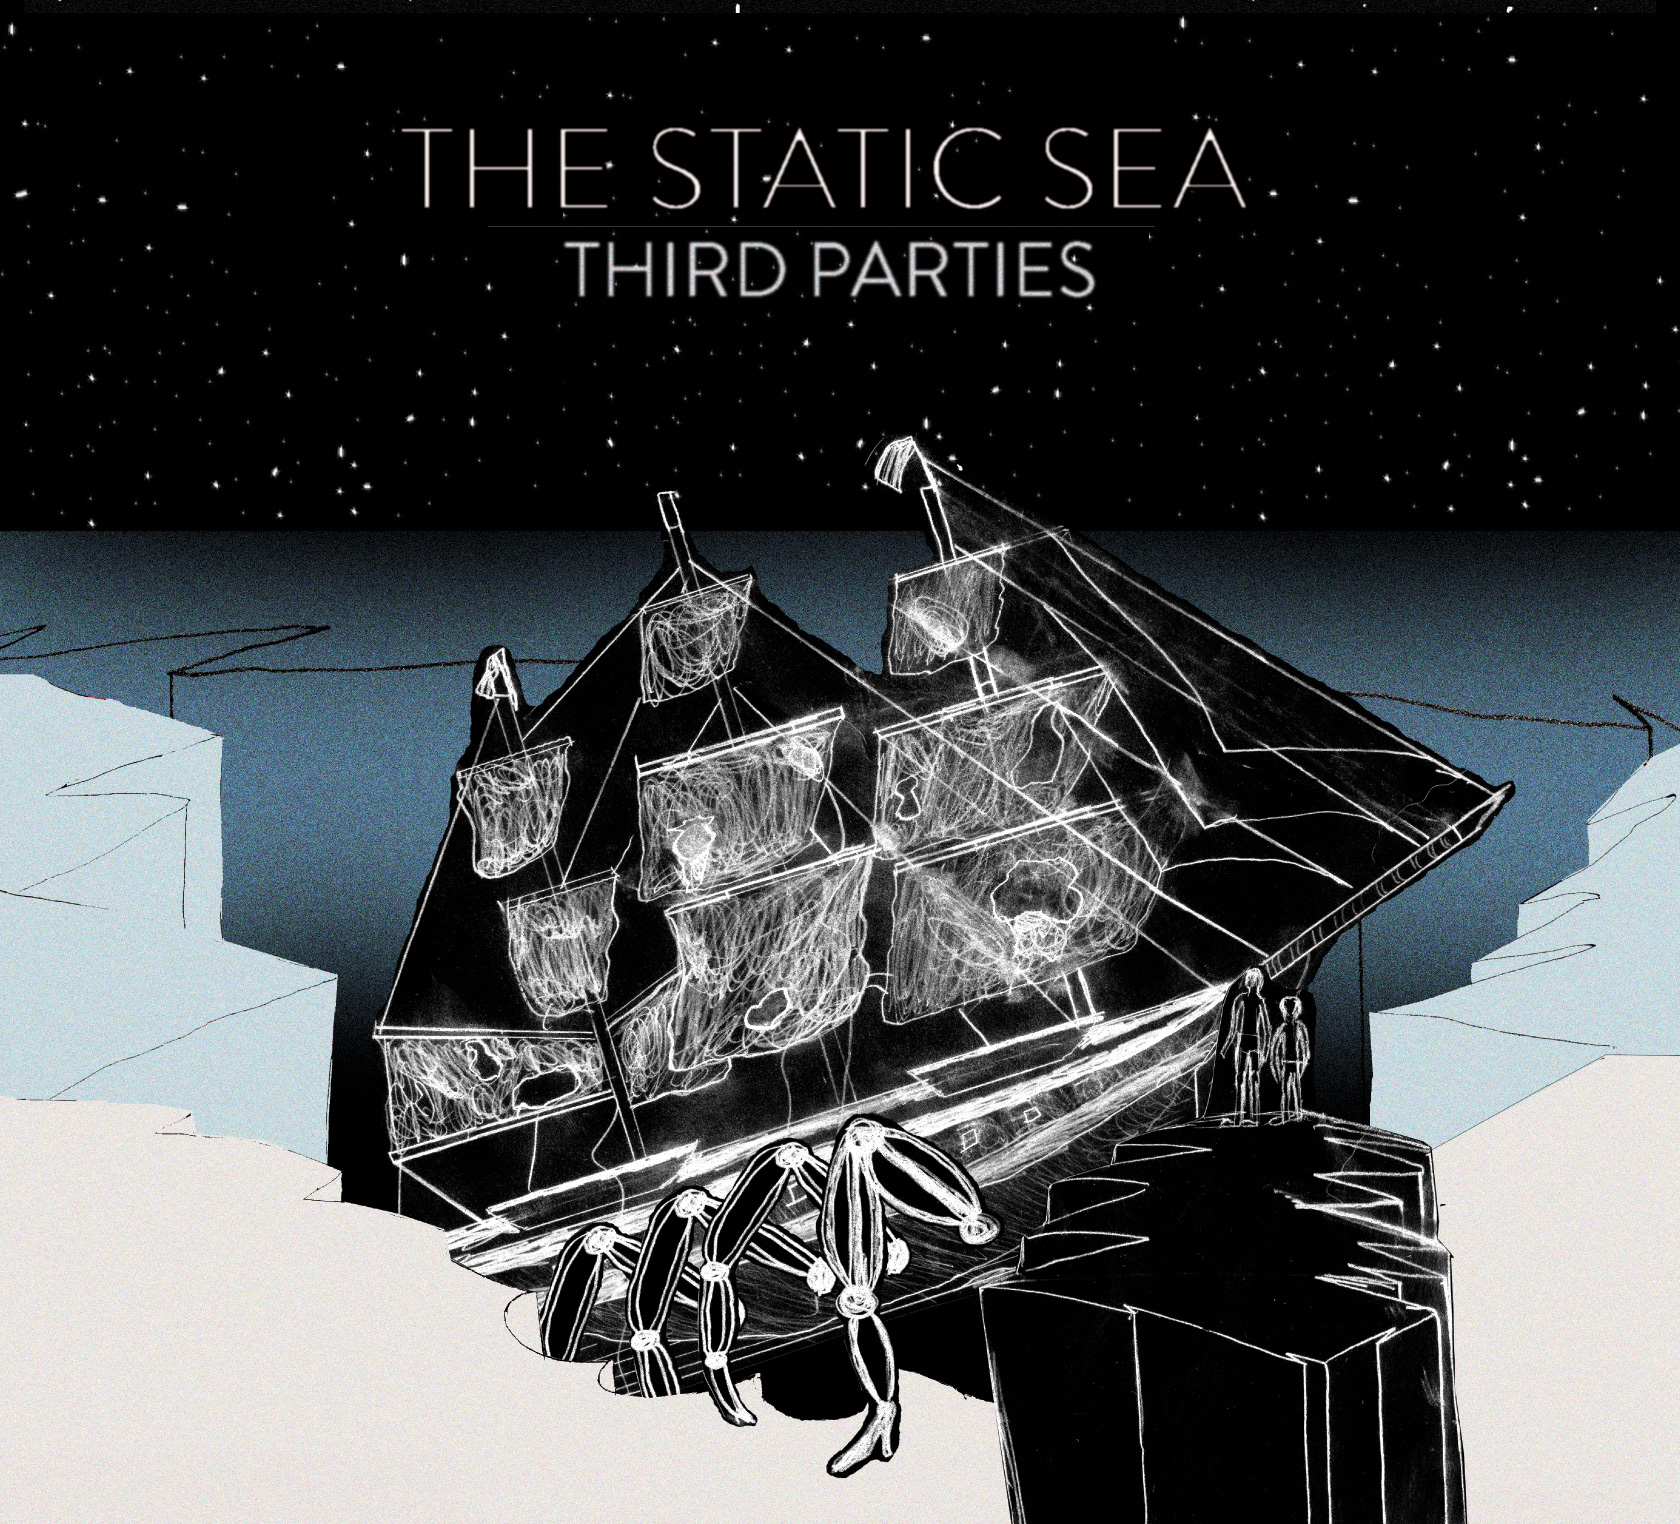 The Static Sea - Third Parties